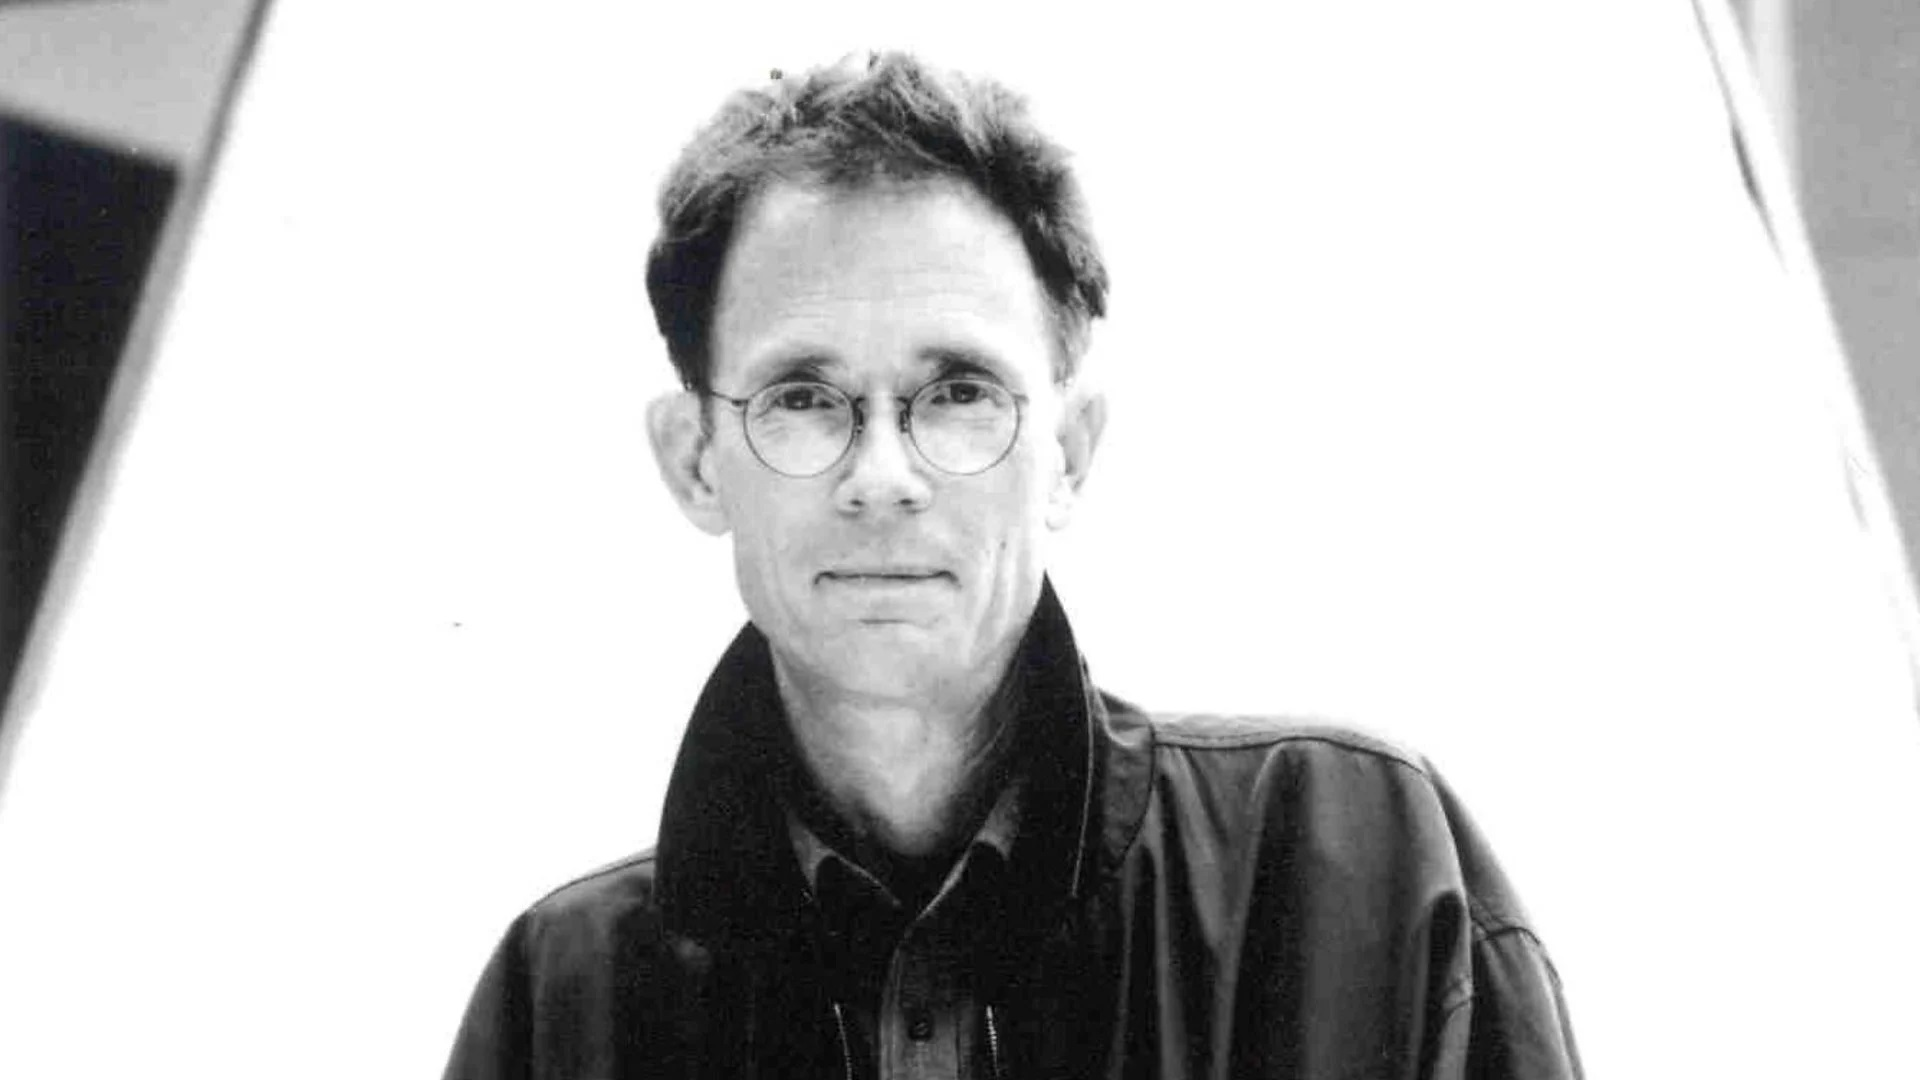 Cyberpunk - William Gibson